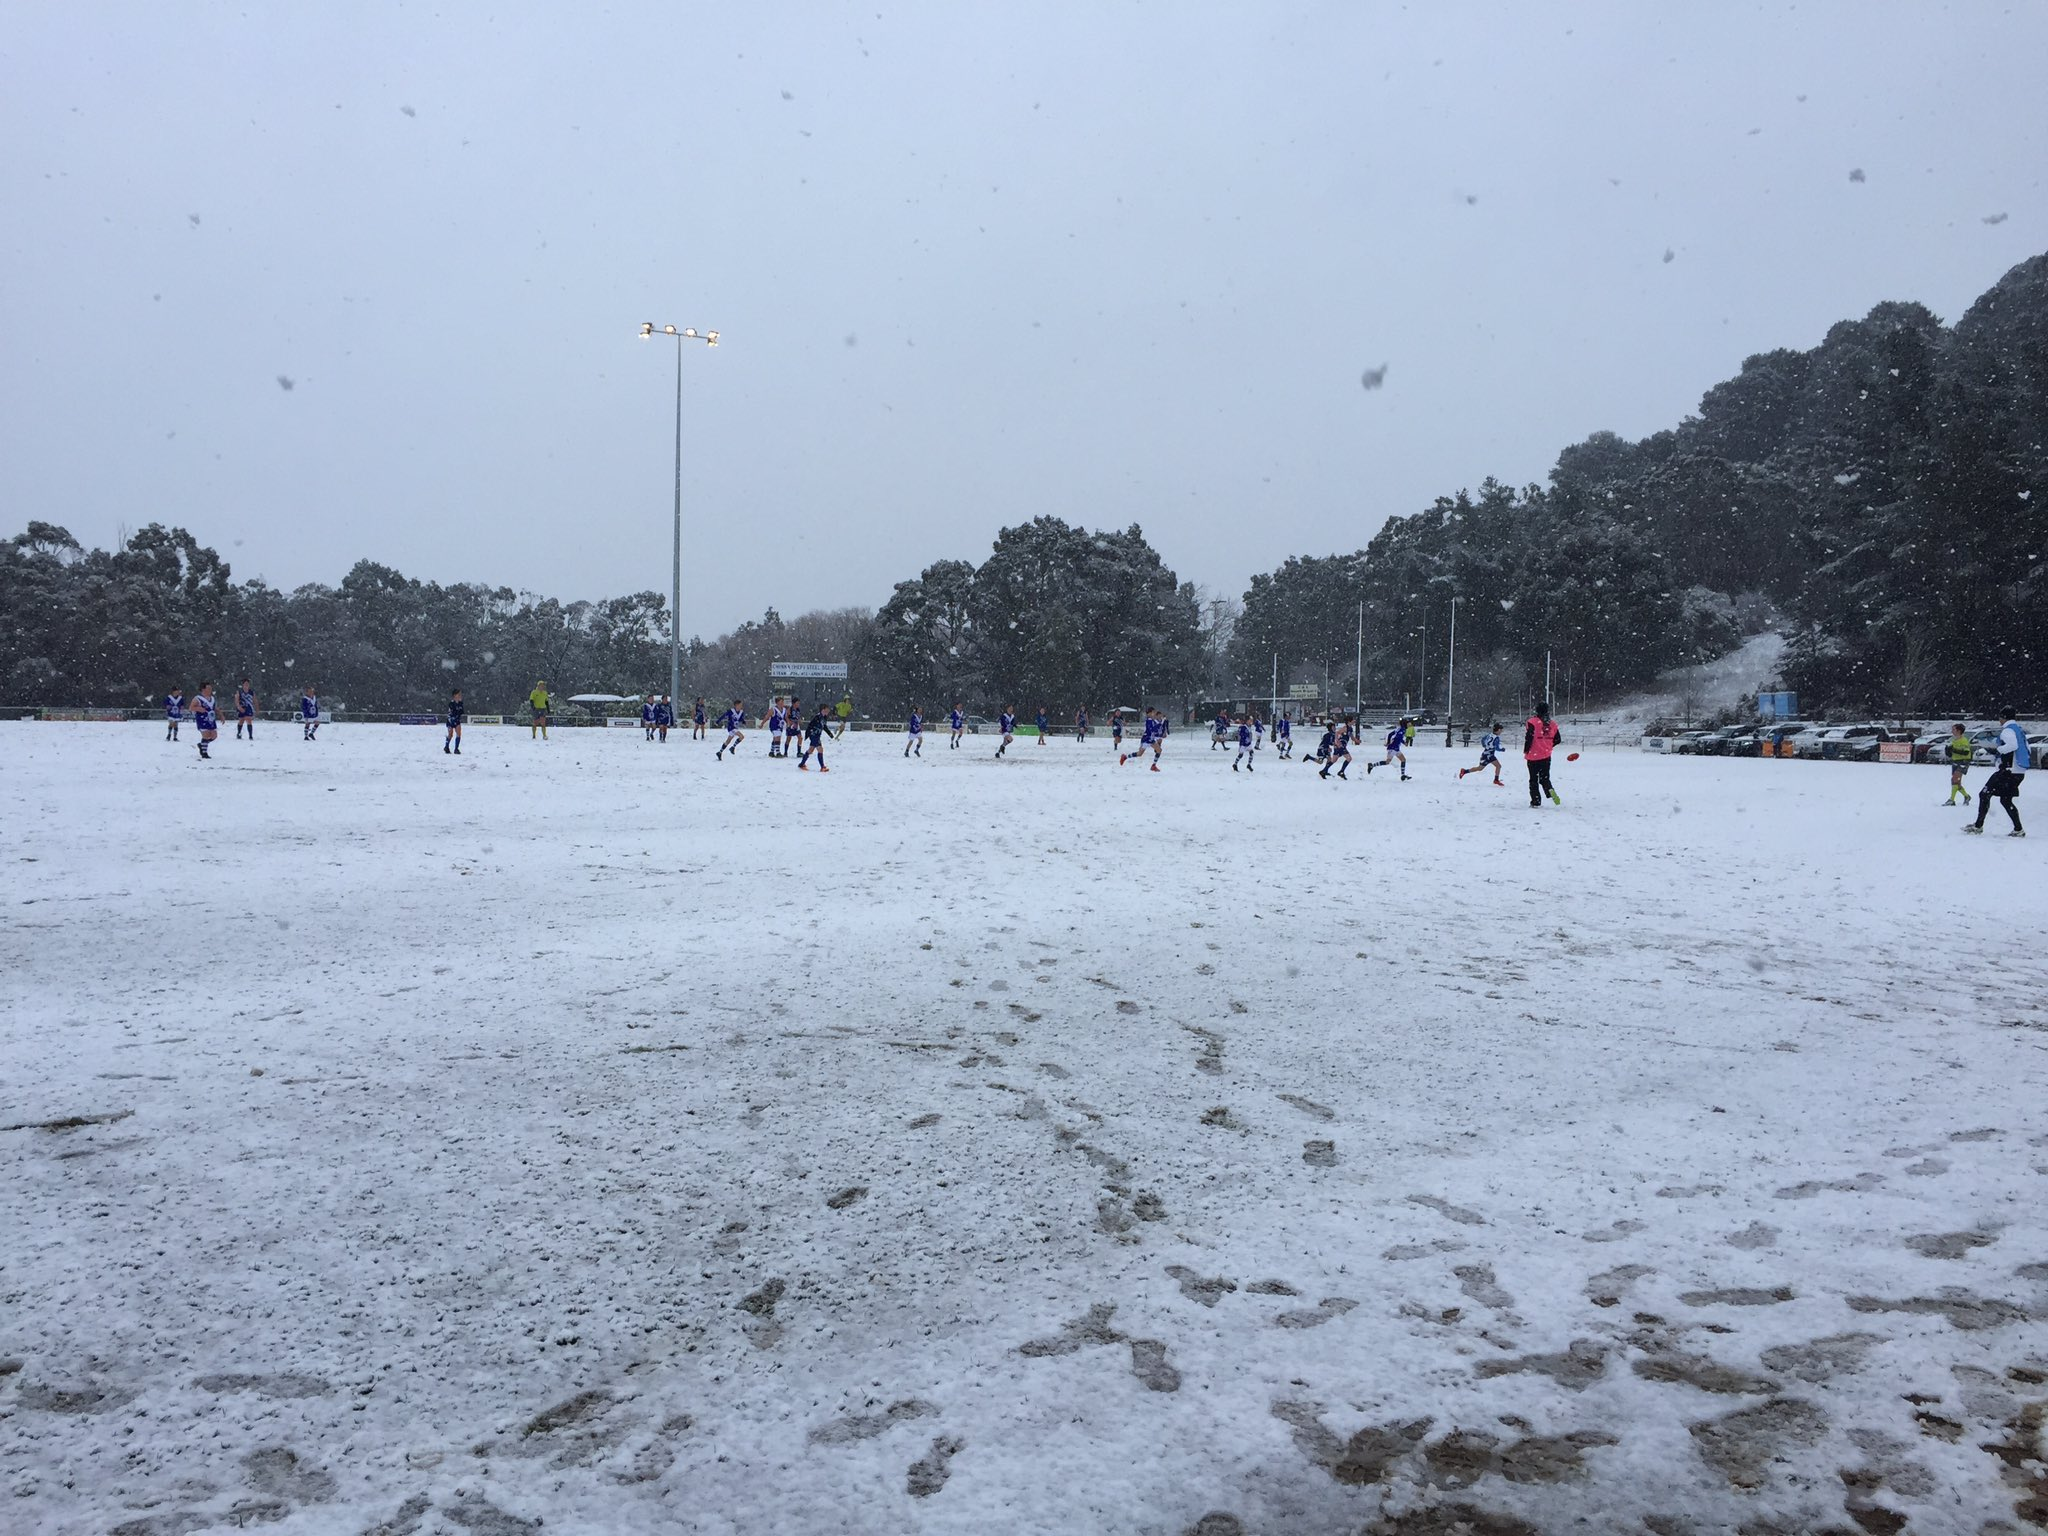 Article image for 'It looks like a skating rink!': Woodend junior footballers play on snow blanketed oval